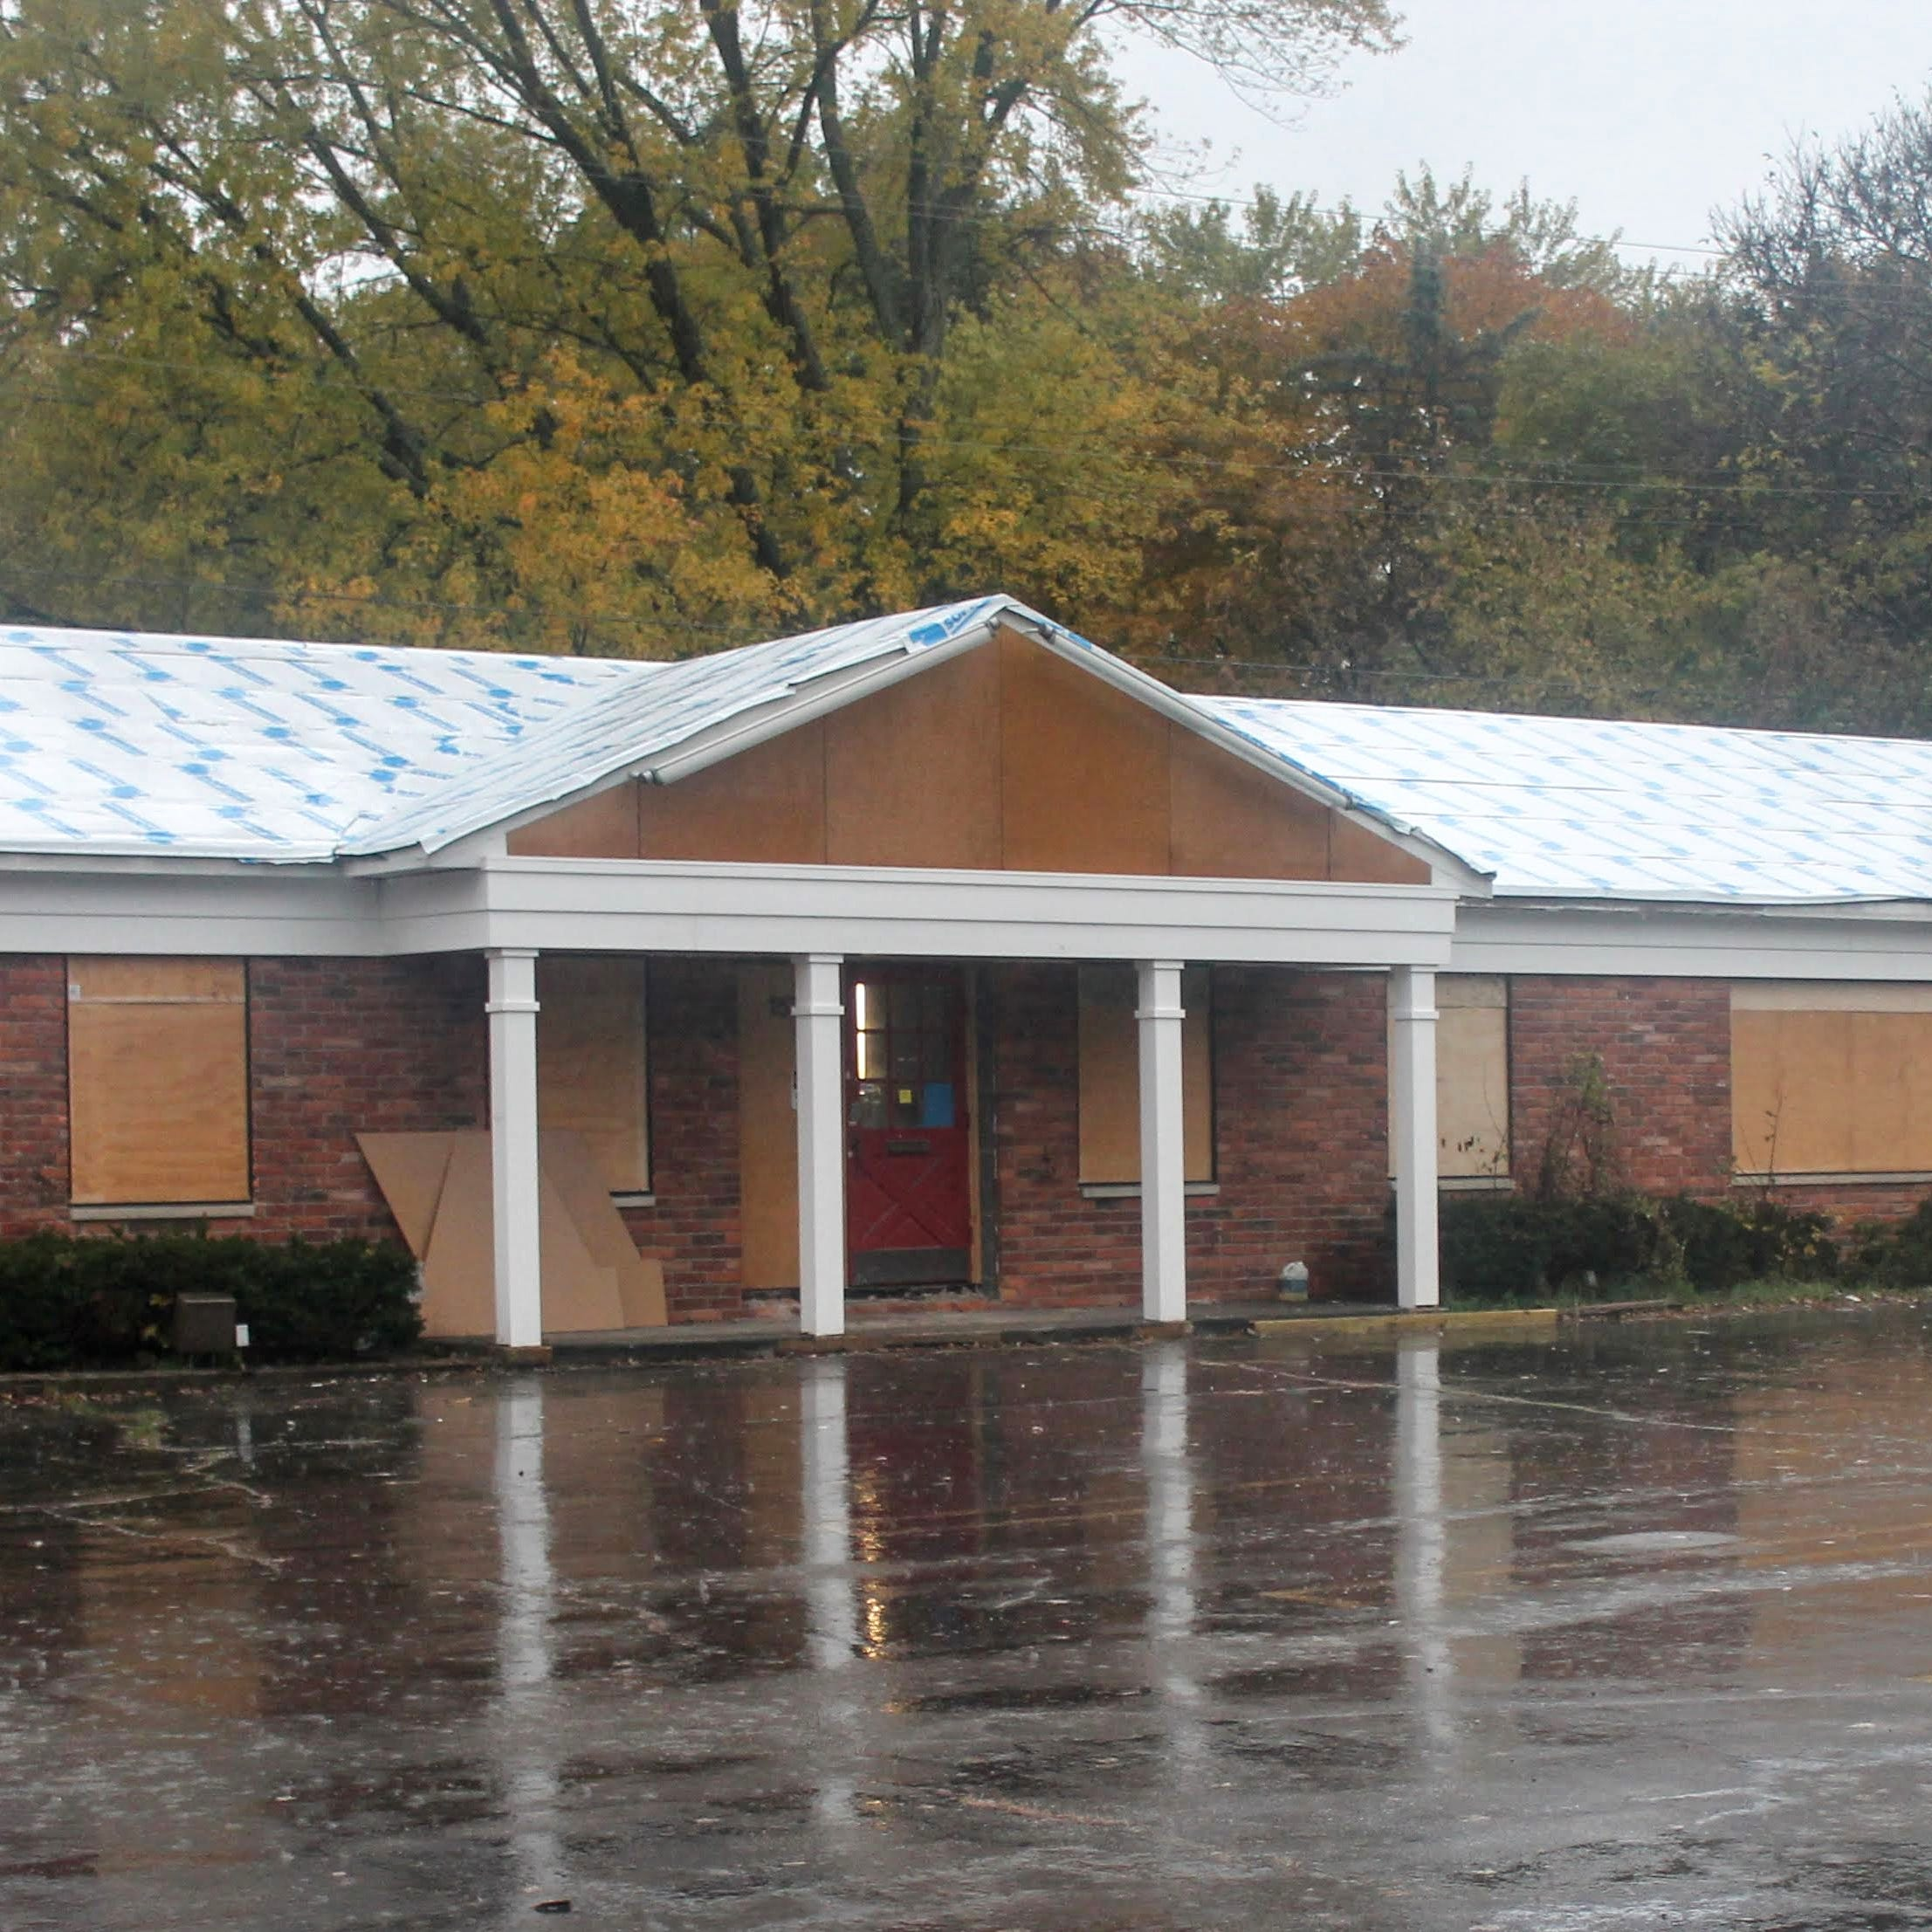 The building purchased by Planned Parenthood along Farmington Road in Livonia.